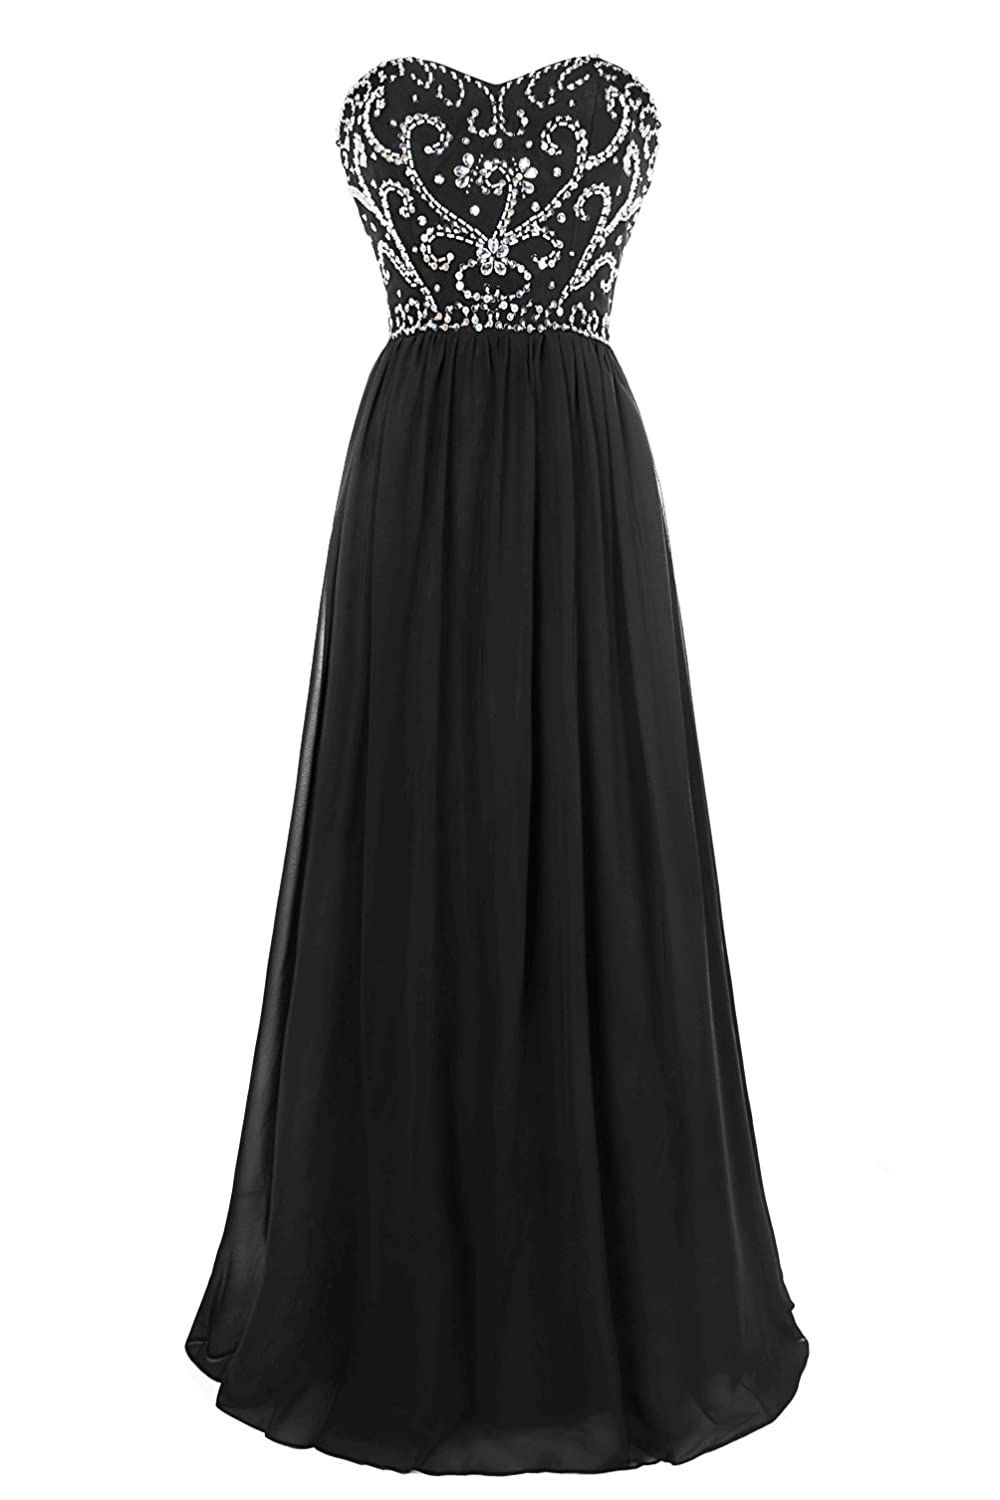 Amazon.com: 99gown Prom Dresses Lace Special Occasion Gown Formal ...